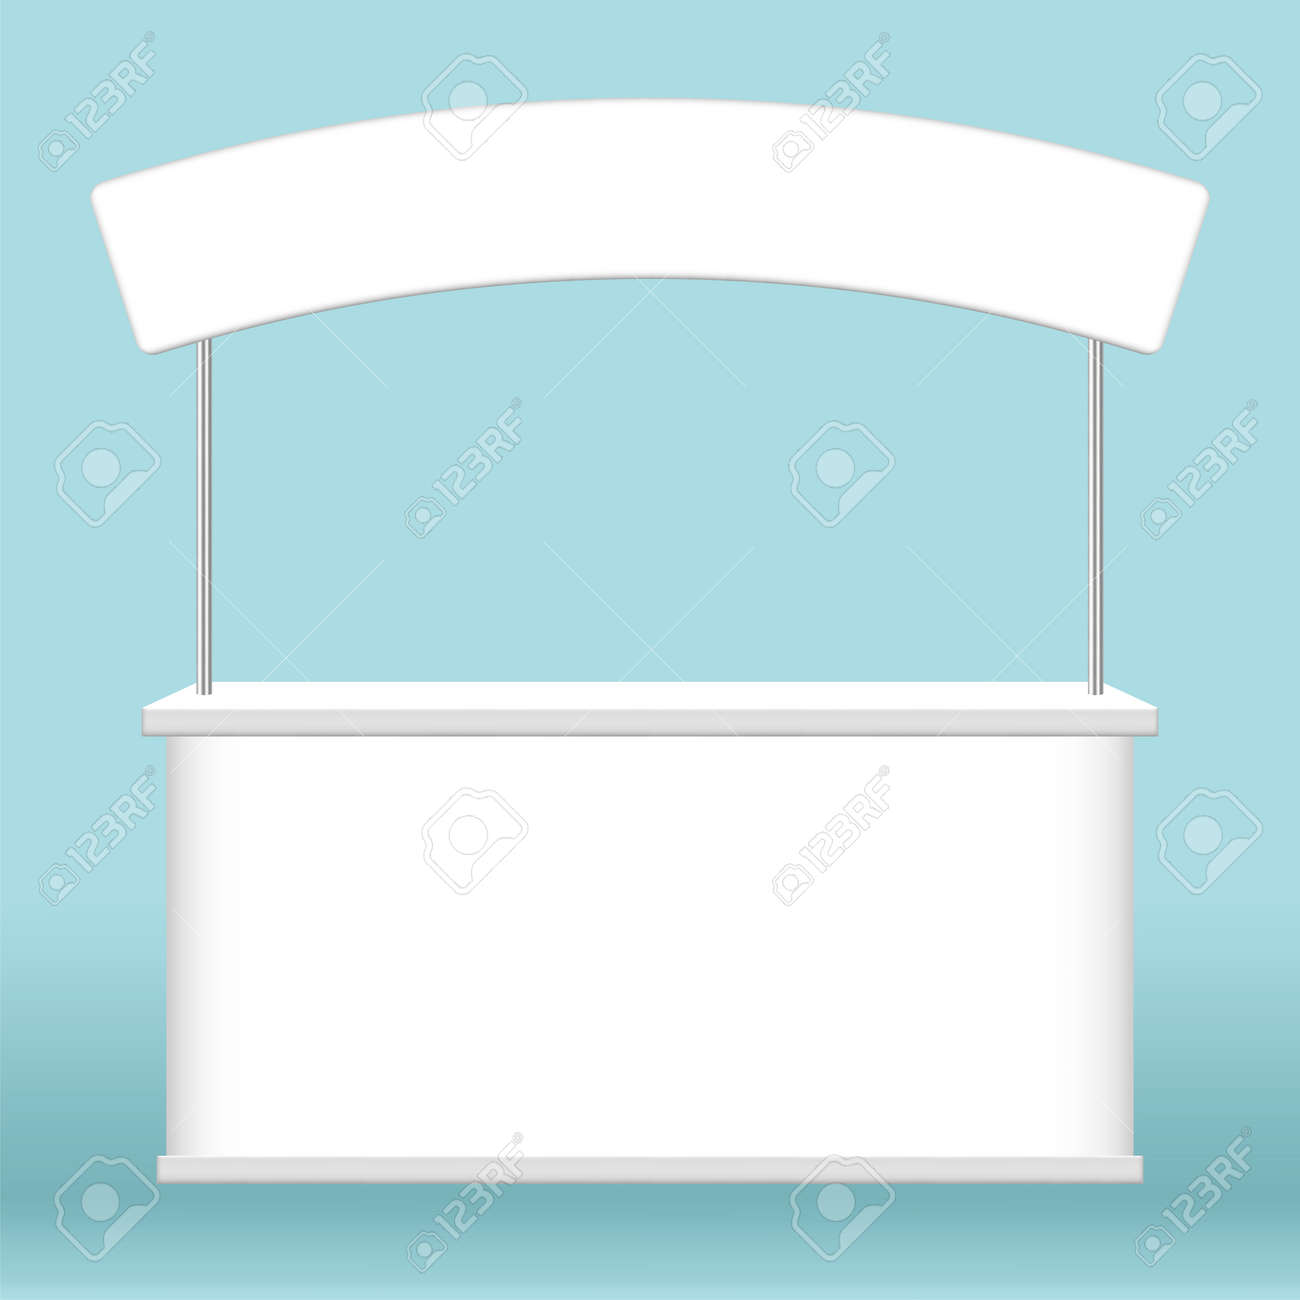 kiosk display, promotion counter stand show, counter stand for retail booth promo, kiosk advertising, counter stall for advertisement, 3D illustration - 169183456